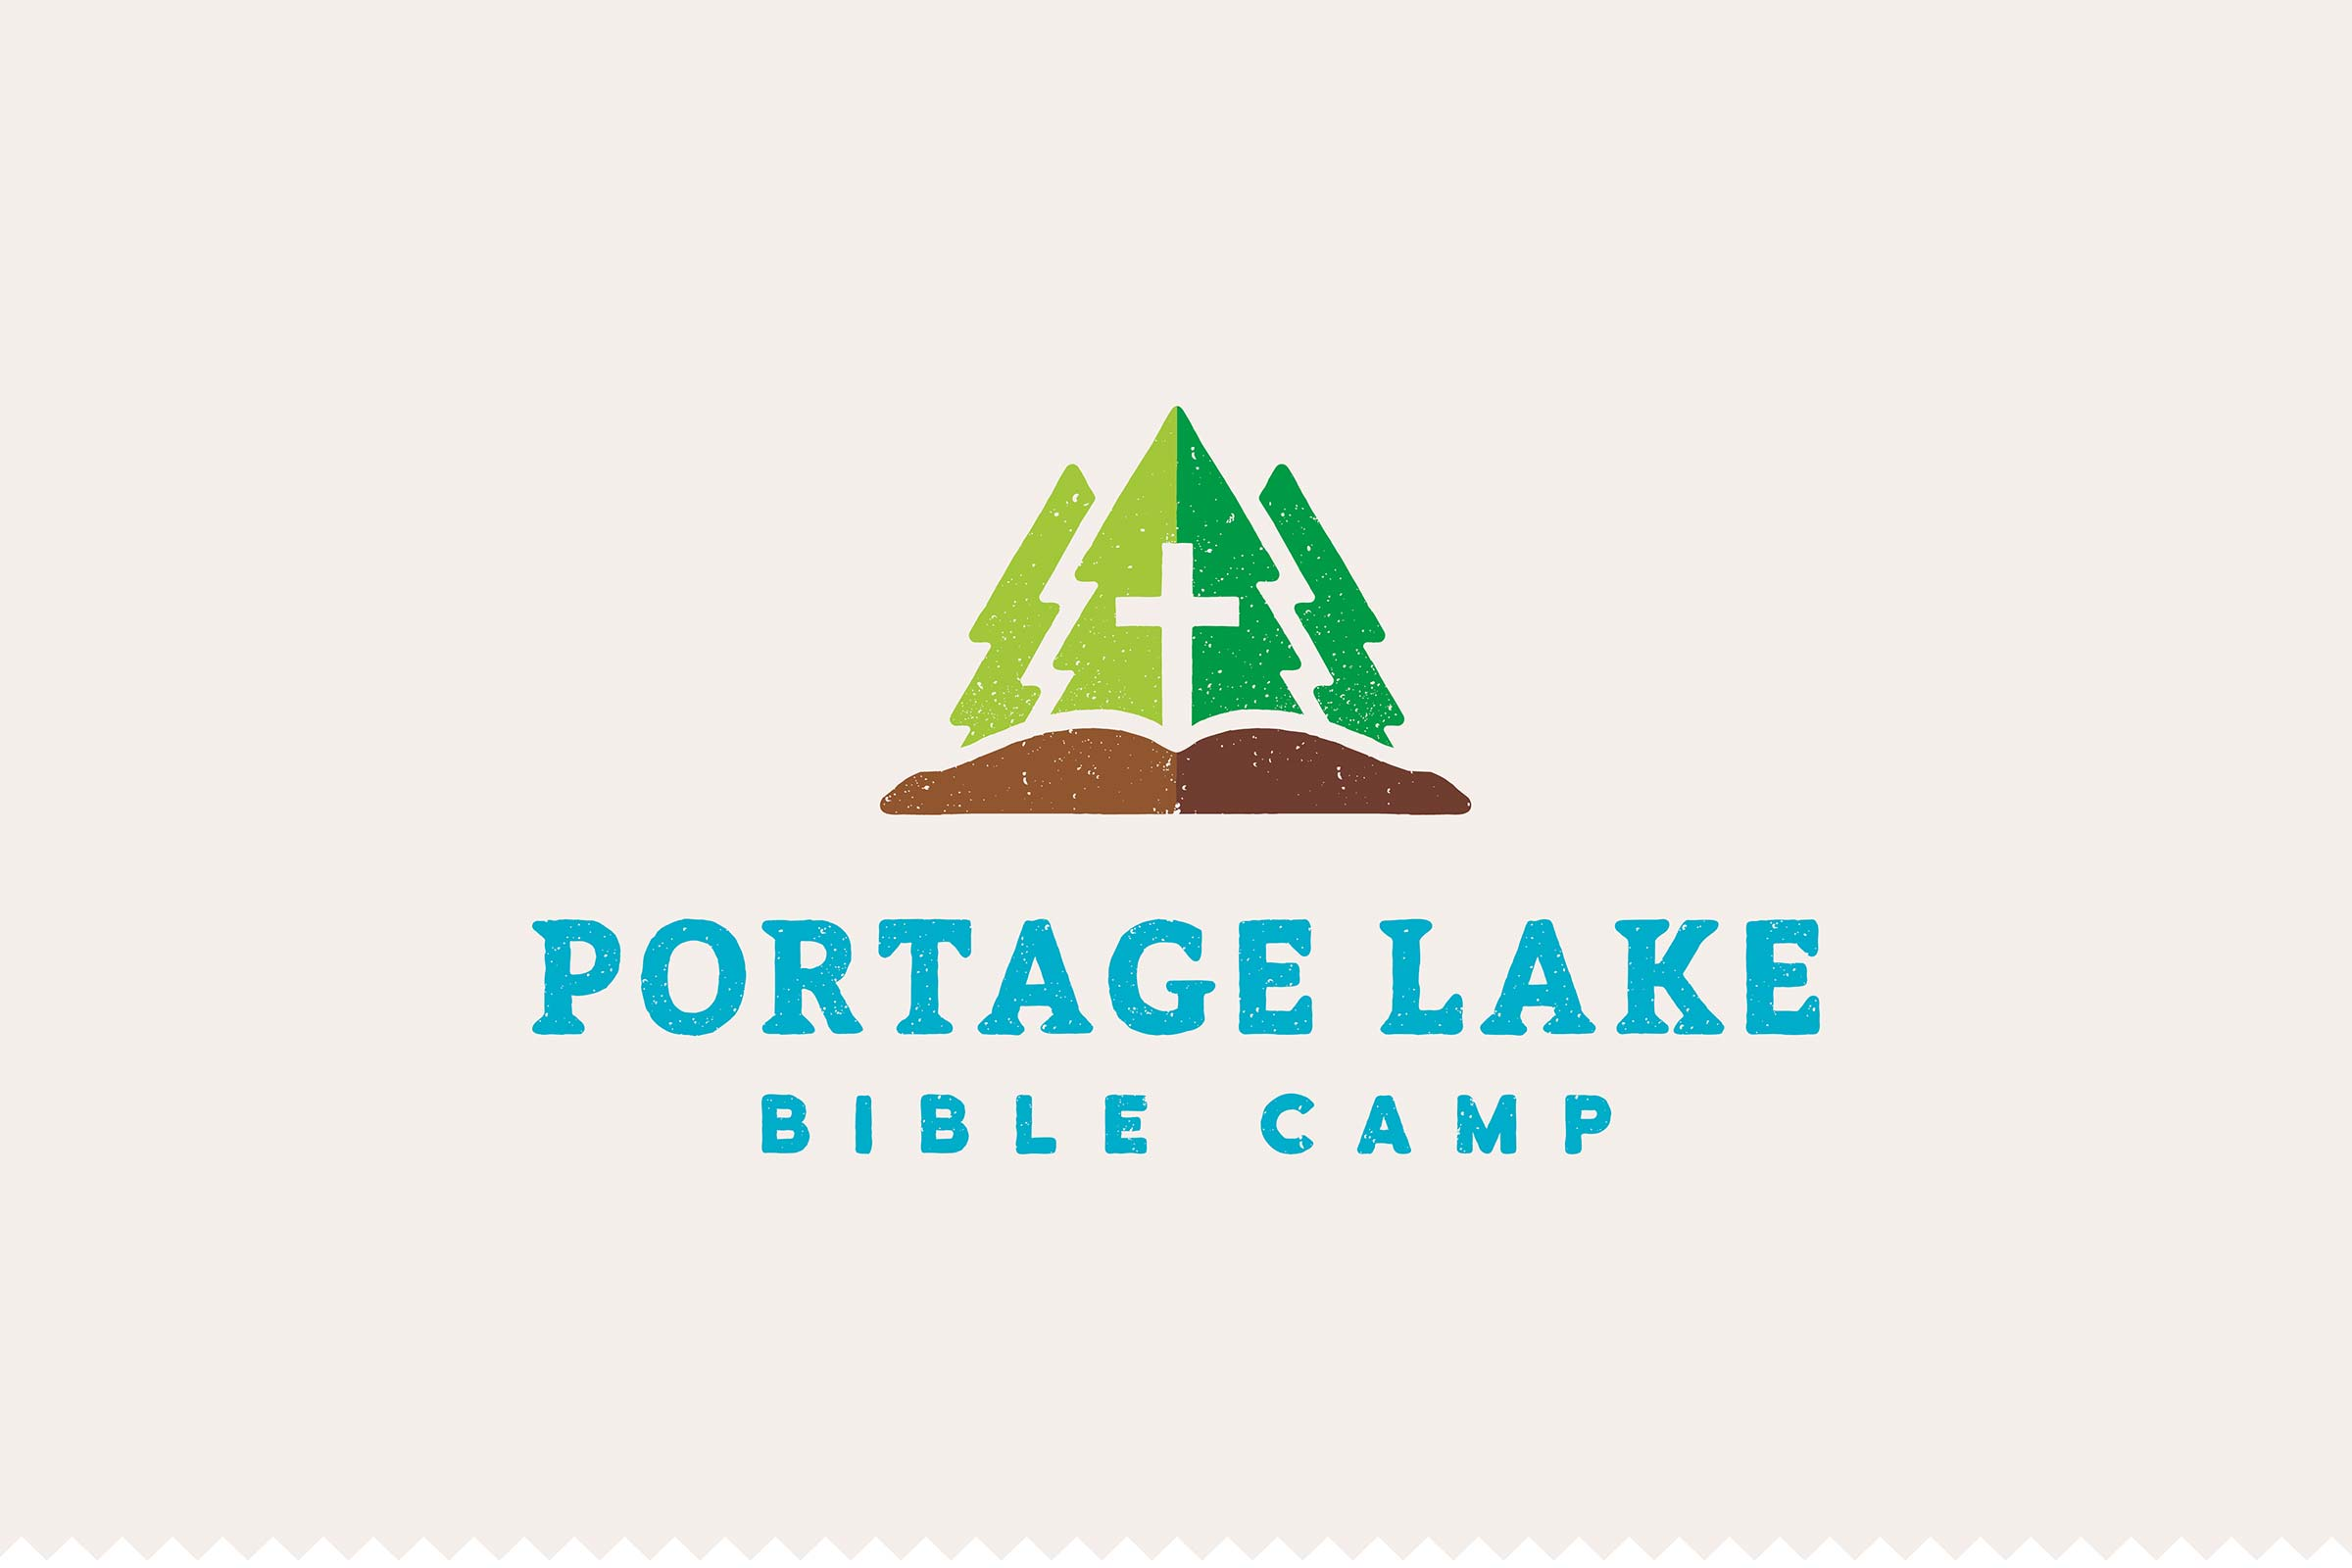 Portage lake bible camp malley design looking to make a connection between the symbolism of a previous camp logo characteristics of modern design and a fun outdoorsy feel portage lake bible buycottarizona Gallery